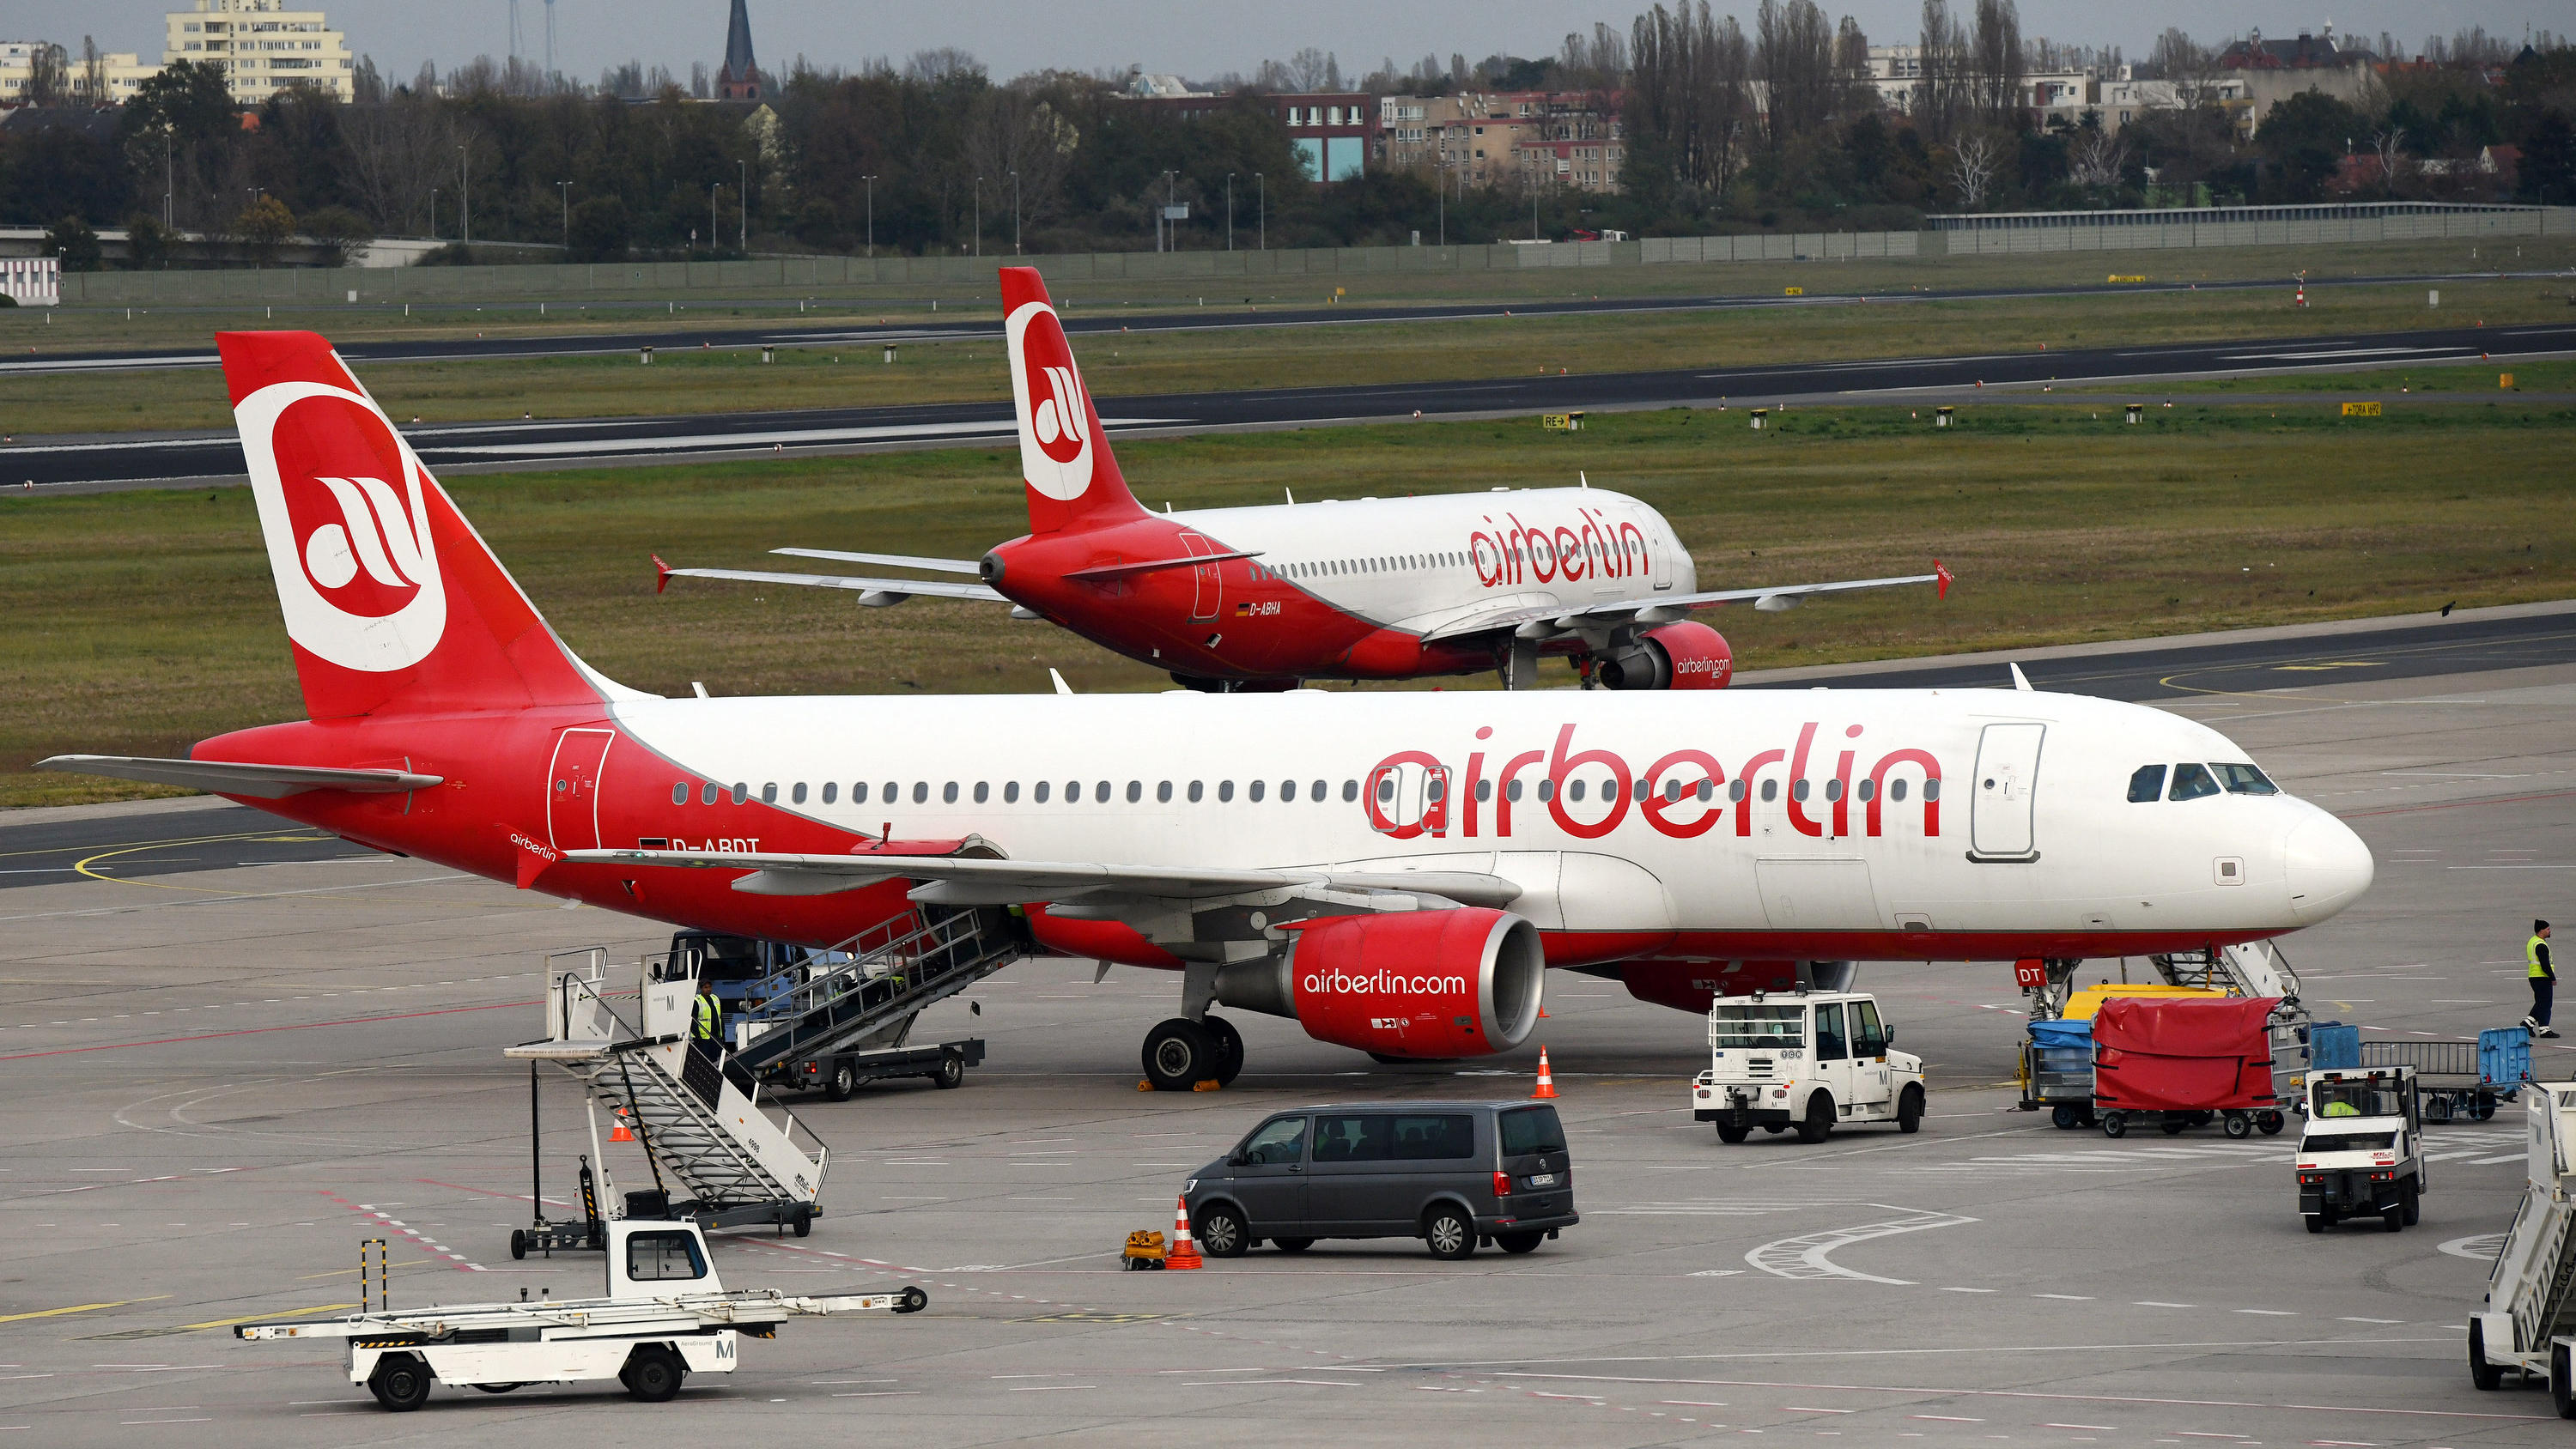 keine gro e auffanggesellschaft was passiert jetzt mit den air berlin mitarbeitern. Black Bedroom Furniture Sets. Home Design Ideas